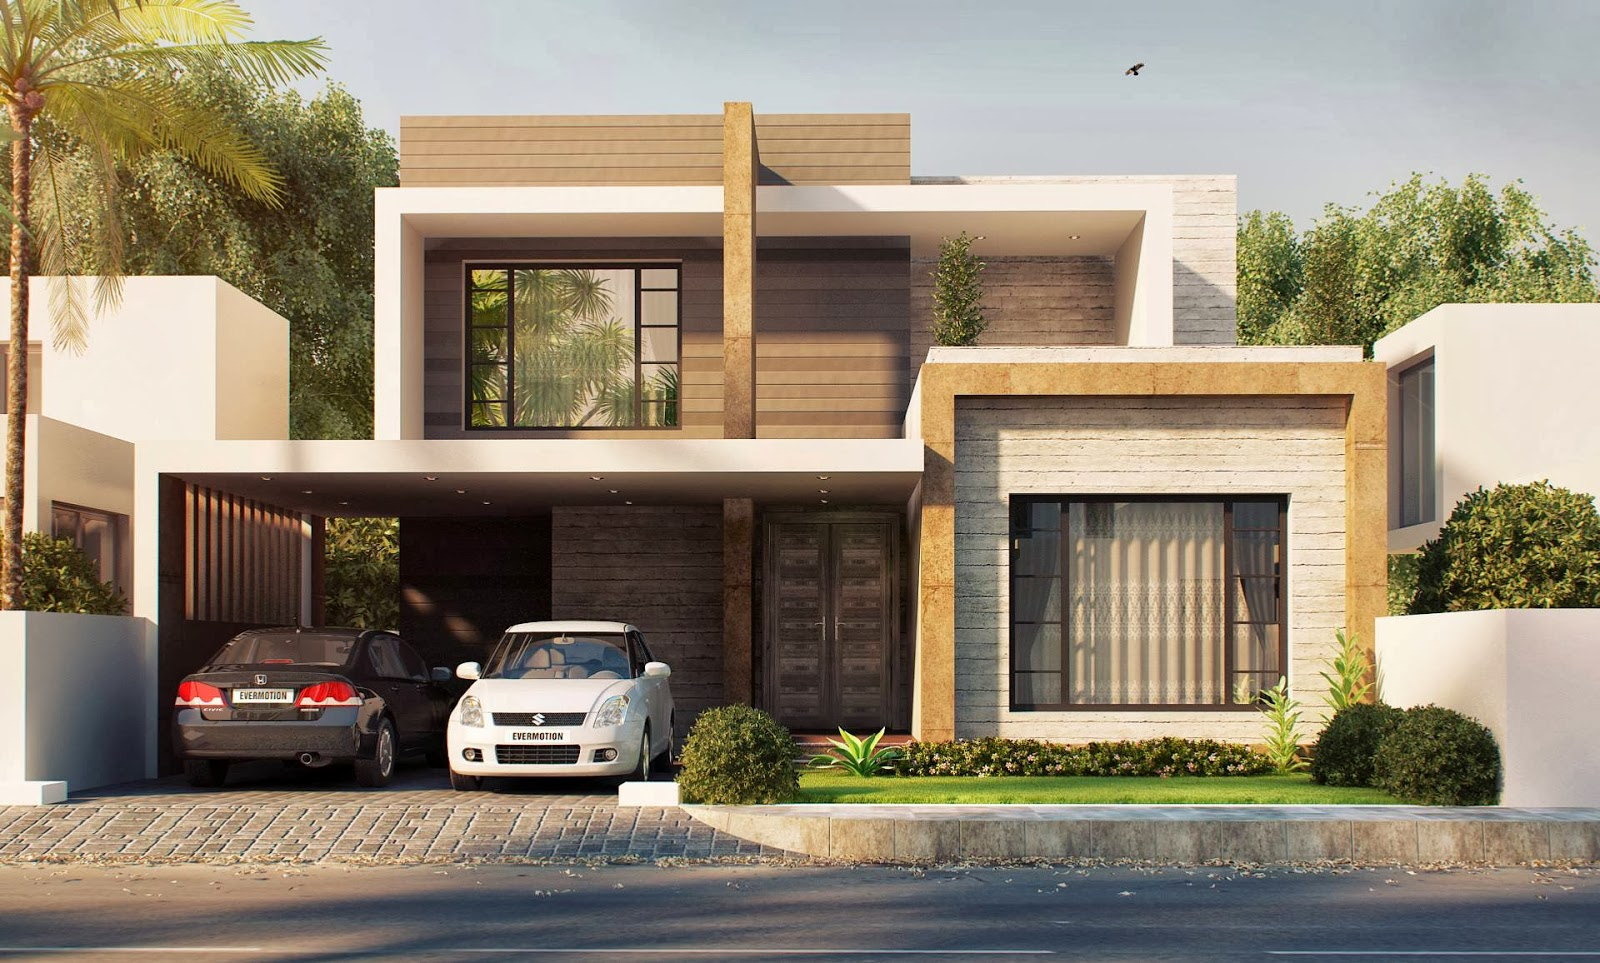 House designs interior Rawalpindi - Houses - Apartments for